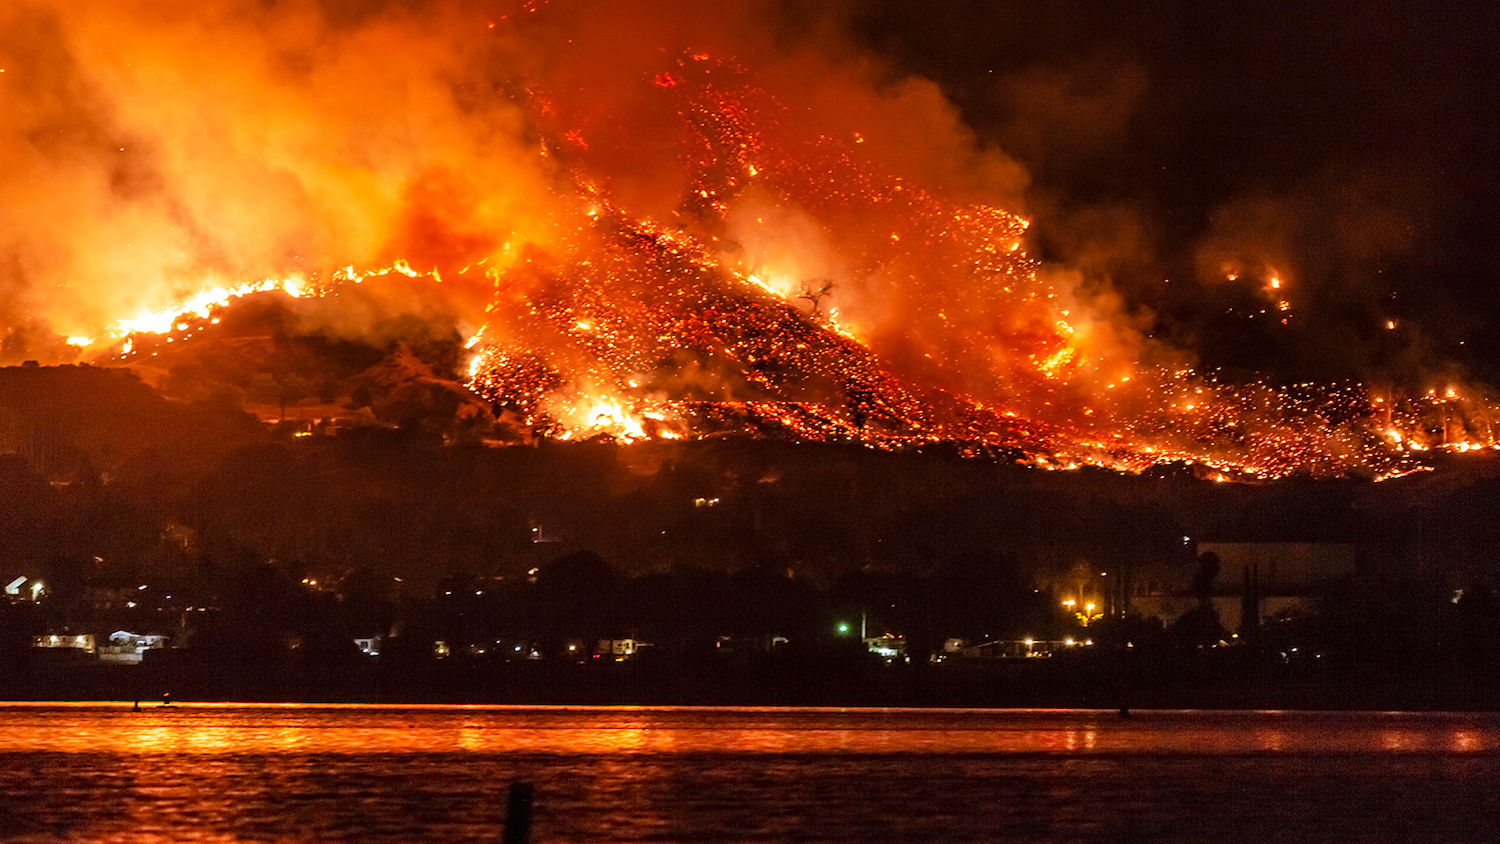 A wildfire burns near a lake in California - After the Blaze: How Wildfires Can Impact Drinking Water - Forestry and Environmental Resources NC State University